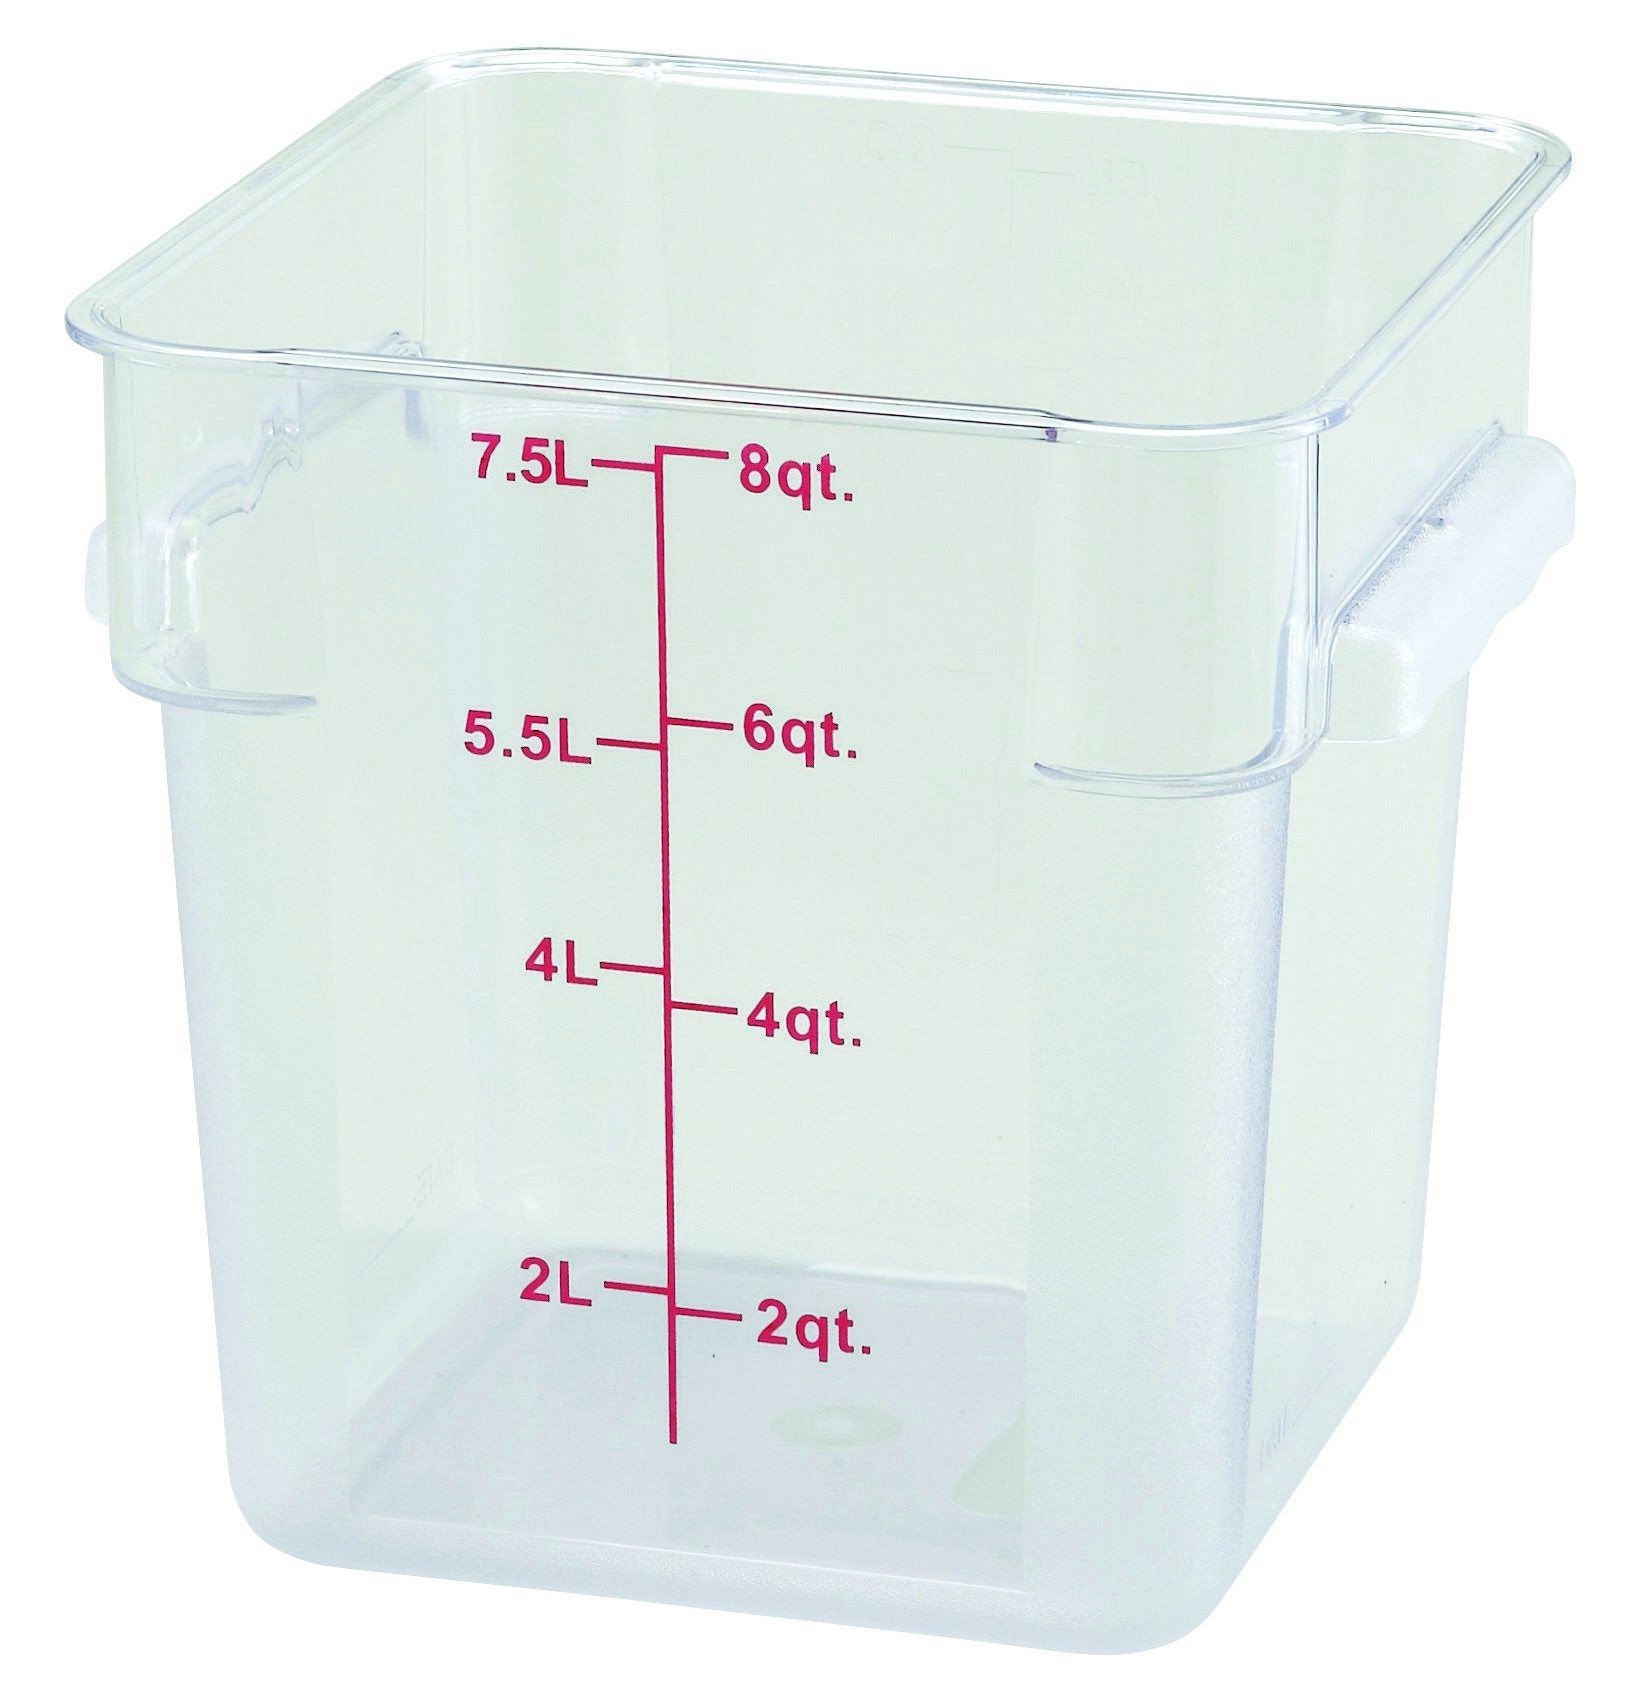 Clear Polycarbonate 8 Qt. Square Food Storage Container